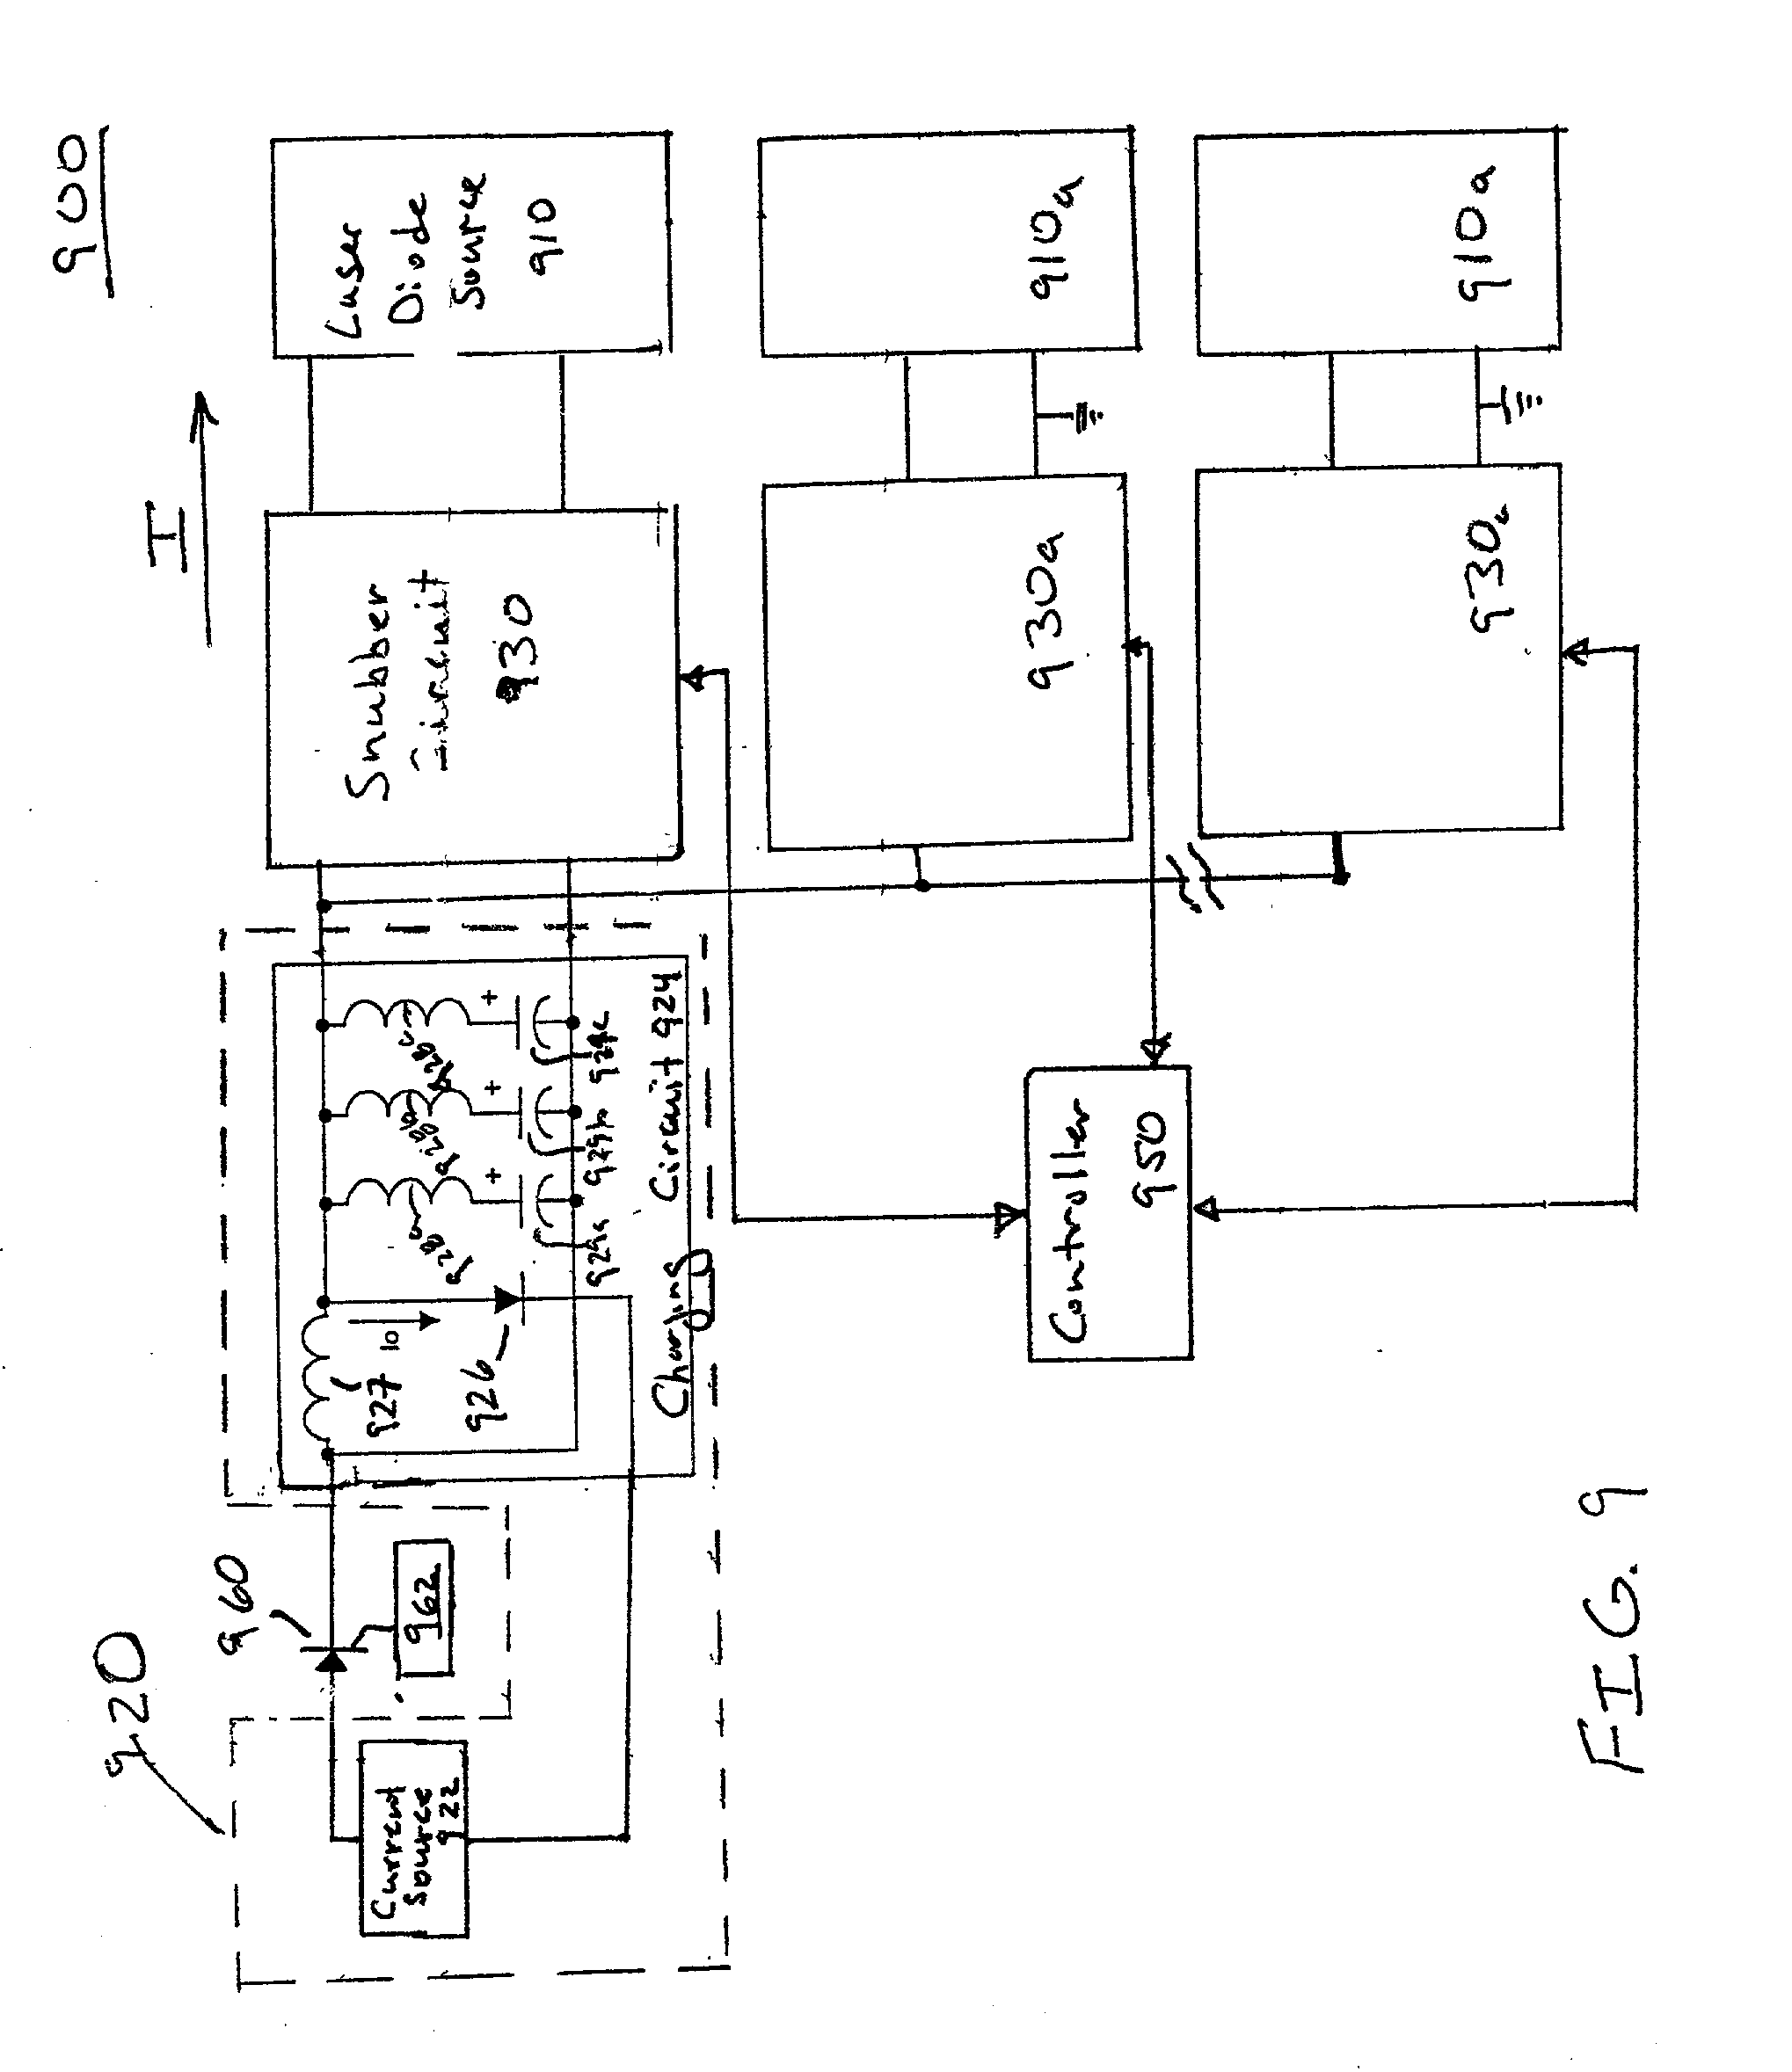 patent us20030039280 - method and apparatus for driving laser diode sources